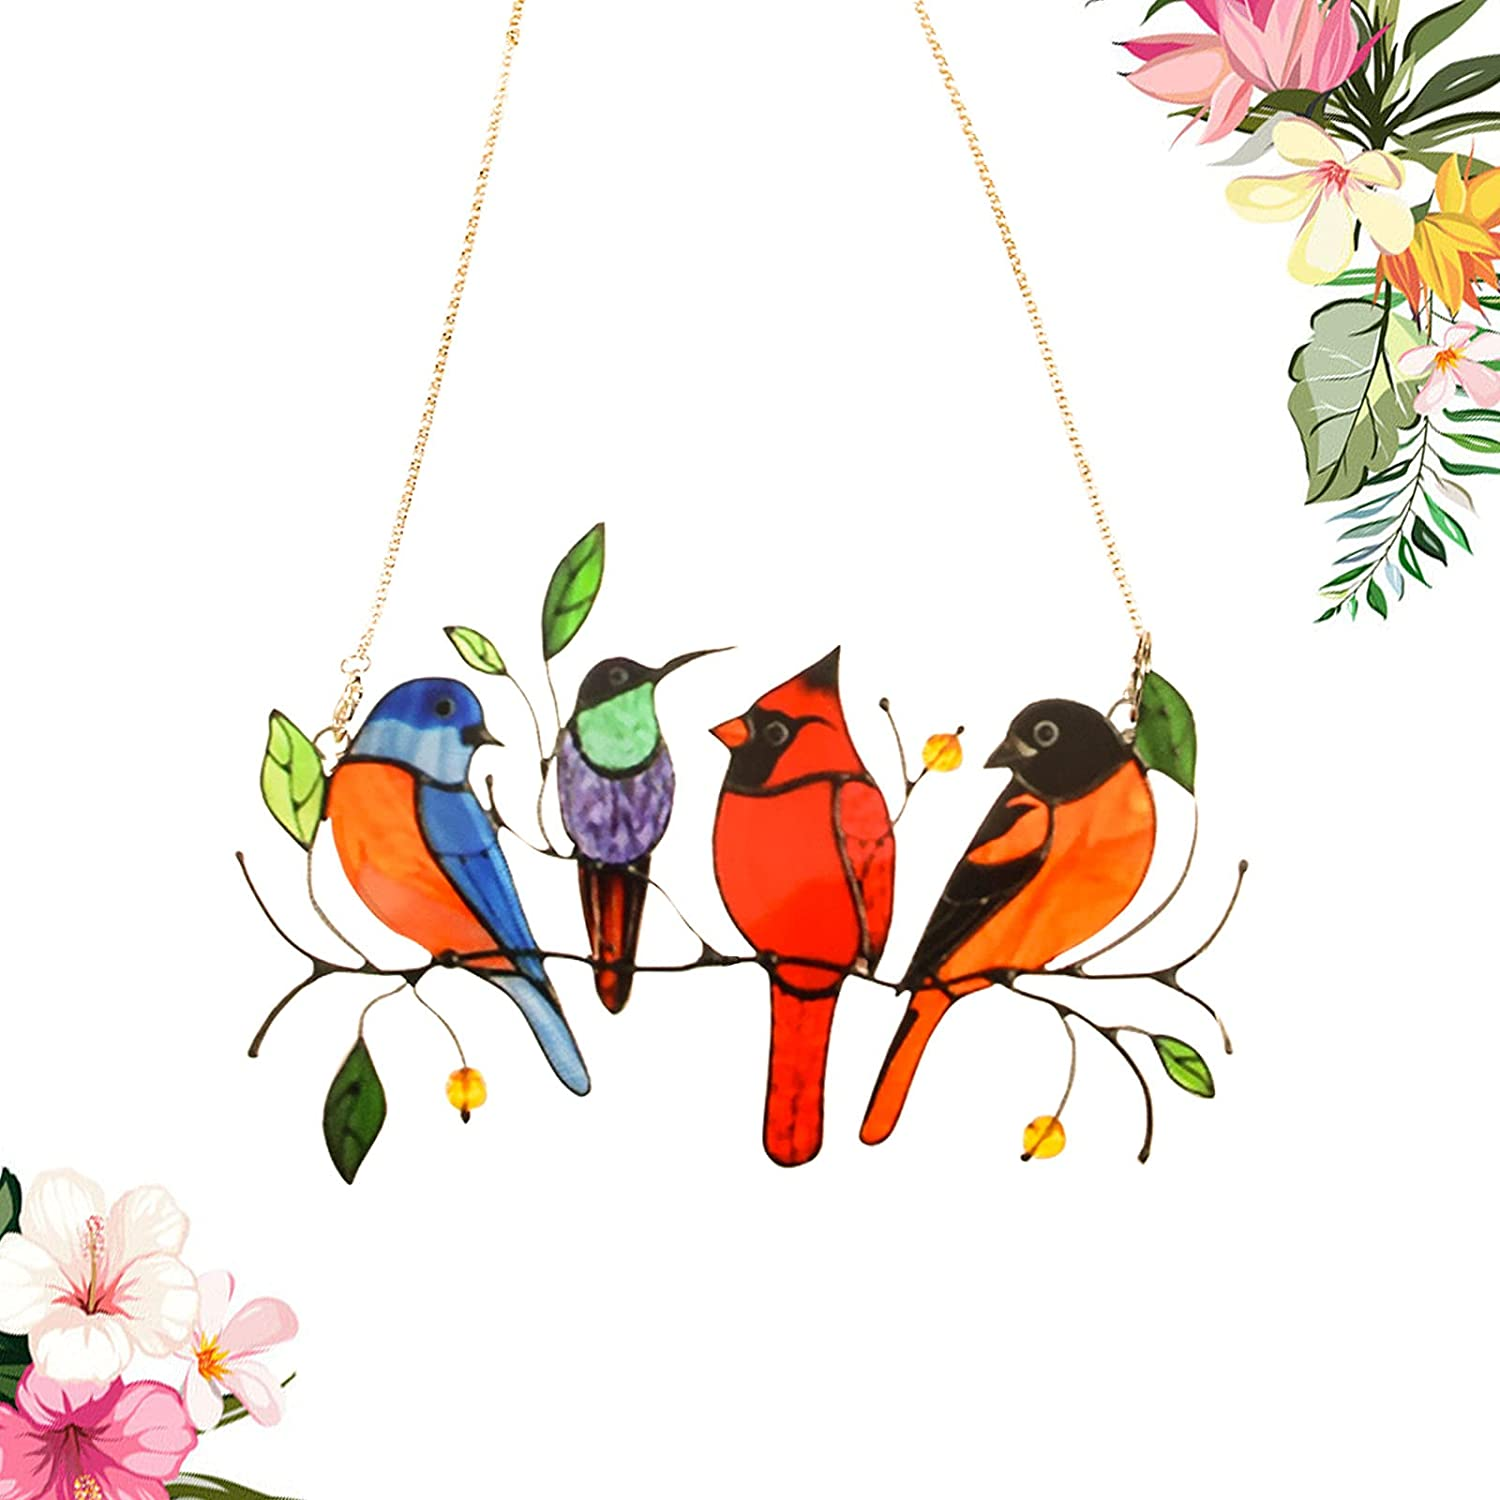 HUOQB Multicolor Birds on a Wire High Stained Glass Window Hangings, Bird Series Sculptures Pendant for Patio Yard Decor Creative Gifts, Home Decoration and Gifts for Bird Lover(4 Birds)